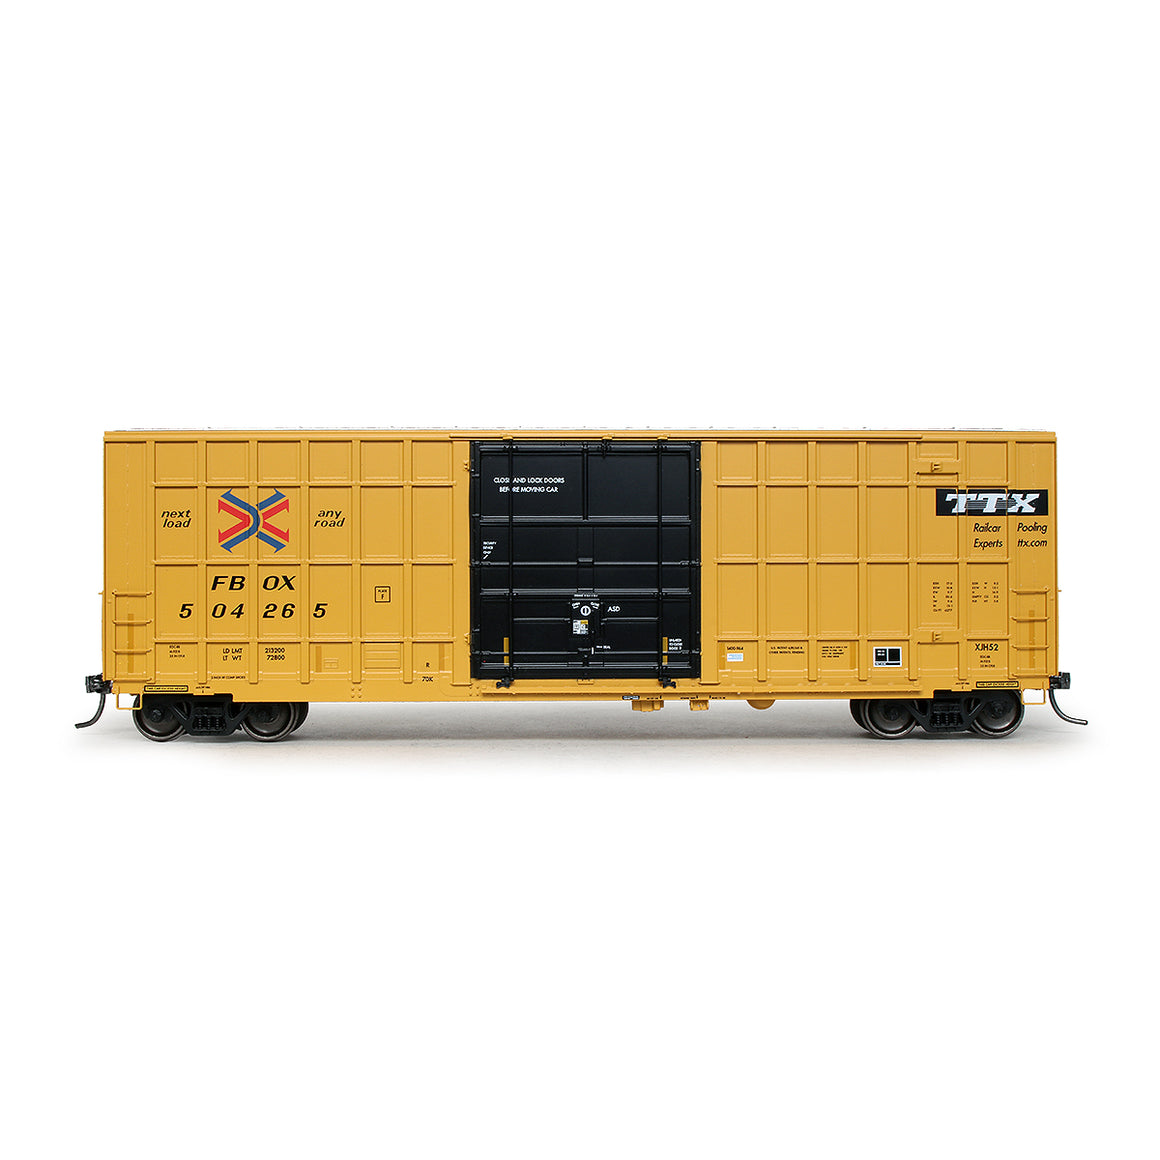 HO Scale: Trinity 6275 Boxcar - TTX/FBOX '2004 As-Delivered'